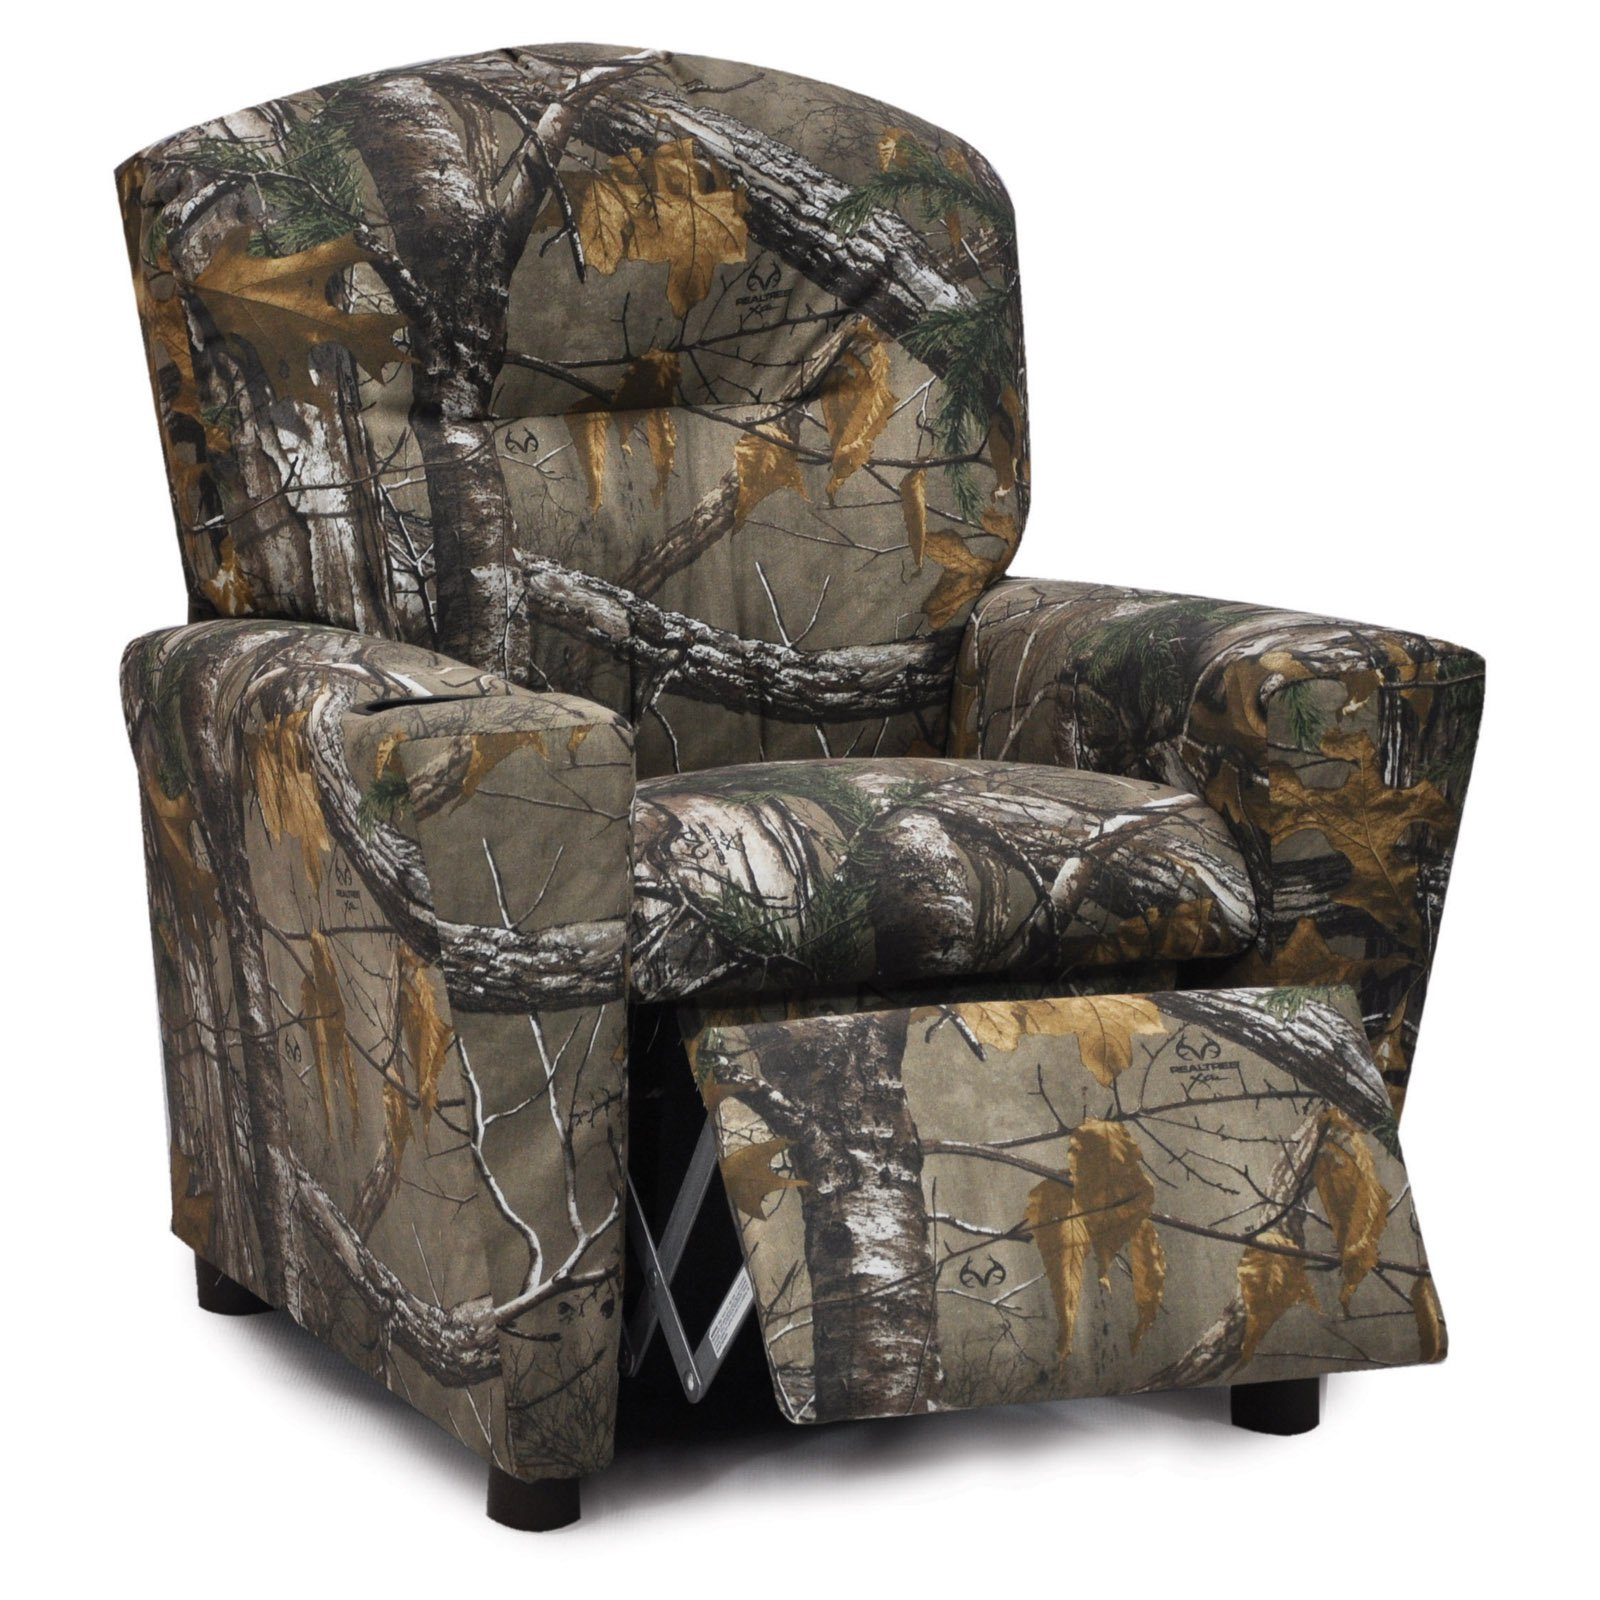 Kidz World Real Tree Camouflage Kids Recliner  sc 1 st  Walmart & Kidz World Real Tree Camouflage Kids Recliner - Walmart.com islam-shia.org